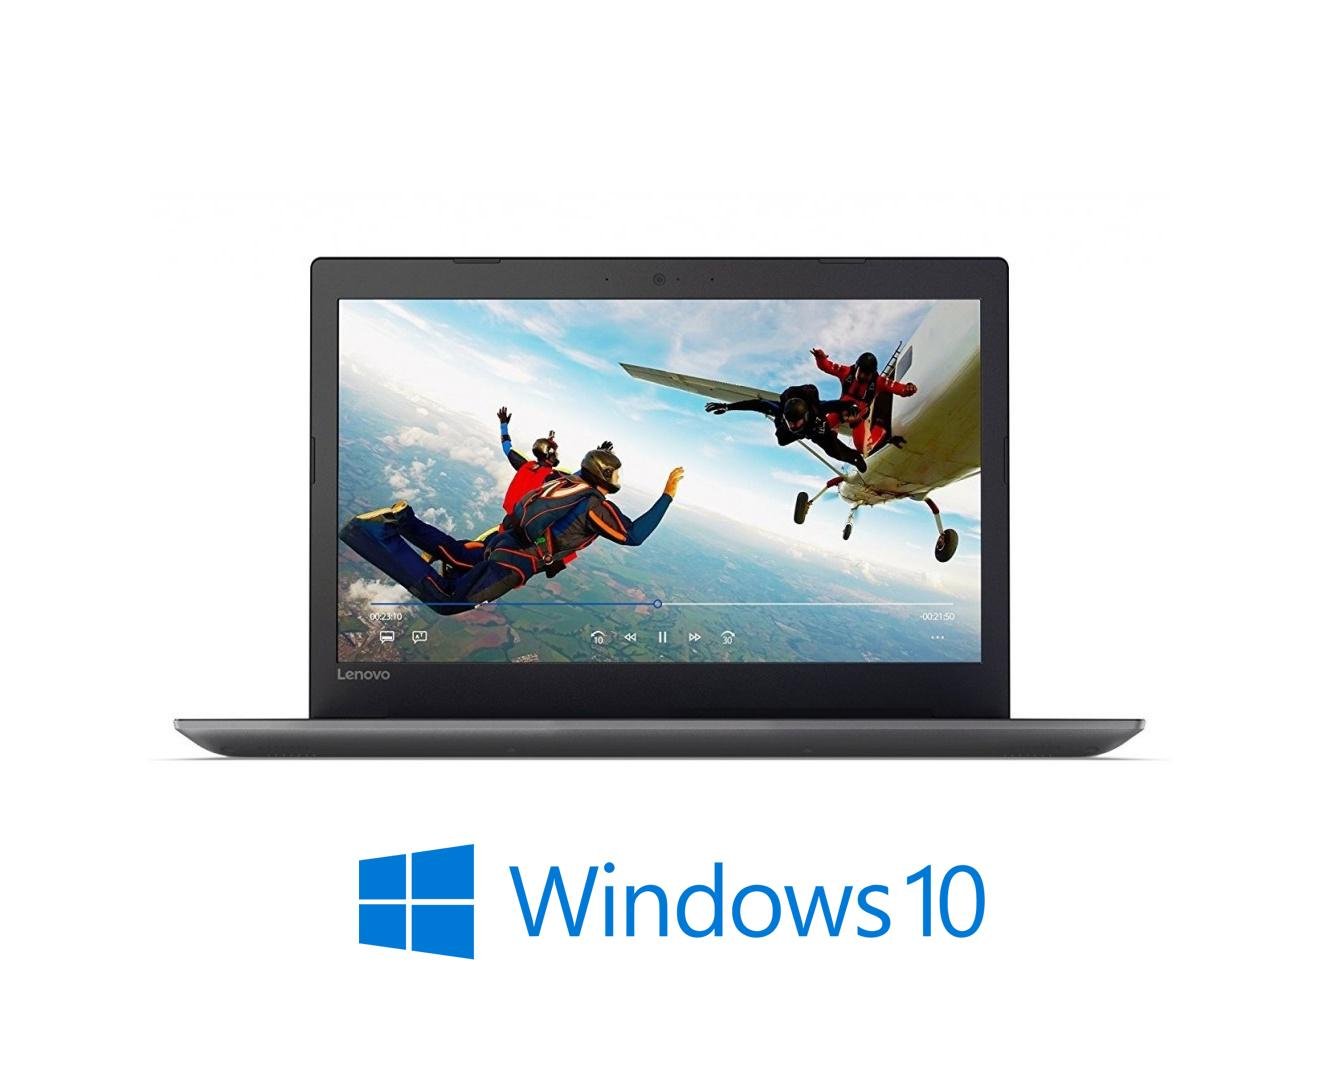 Lenovo Ideapad 320 AMD A12 9720p - 8GB RAM/ 1000GB HDD/ Radeon R7 Shared/ W10/ 15.6